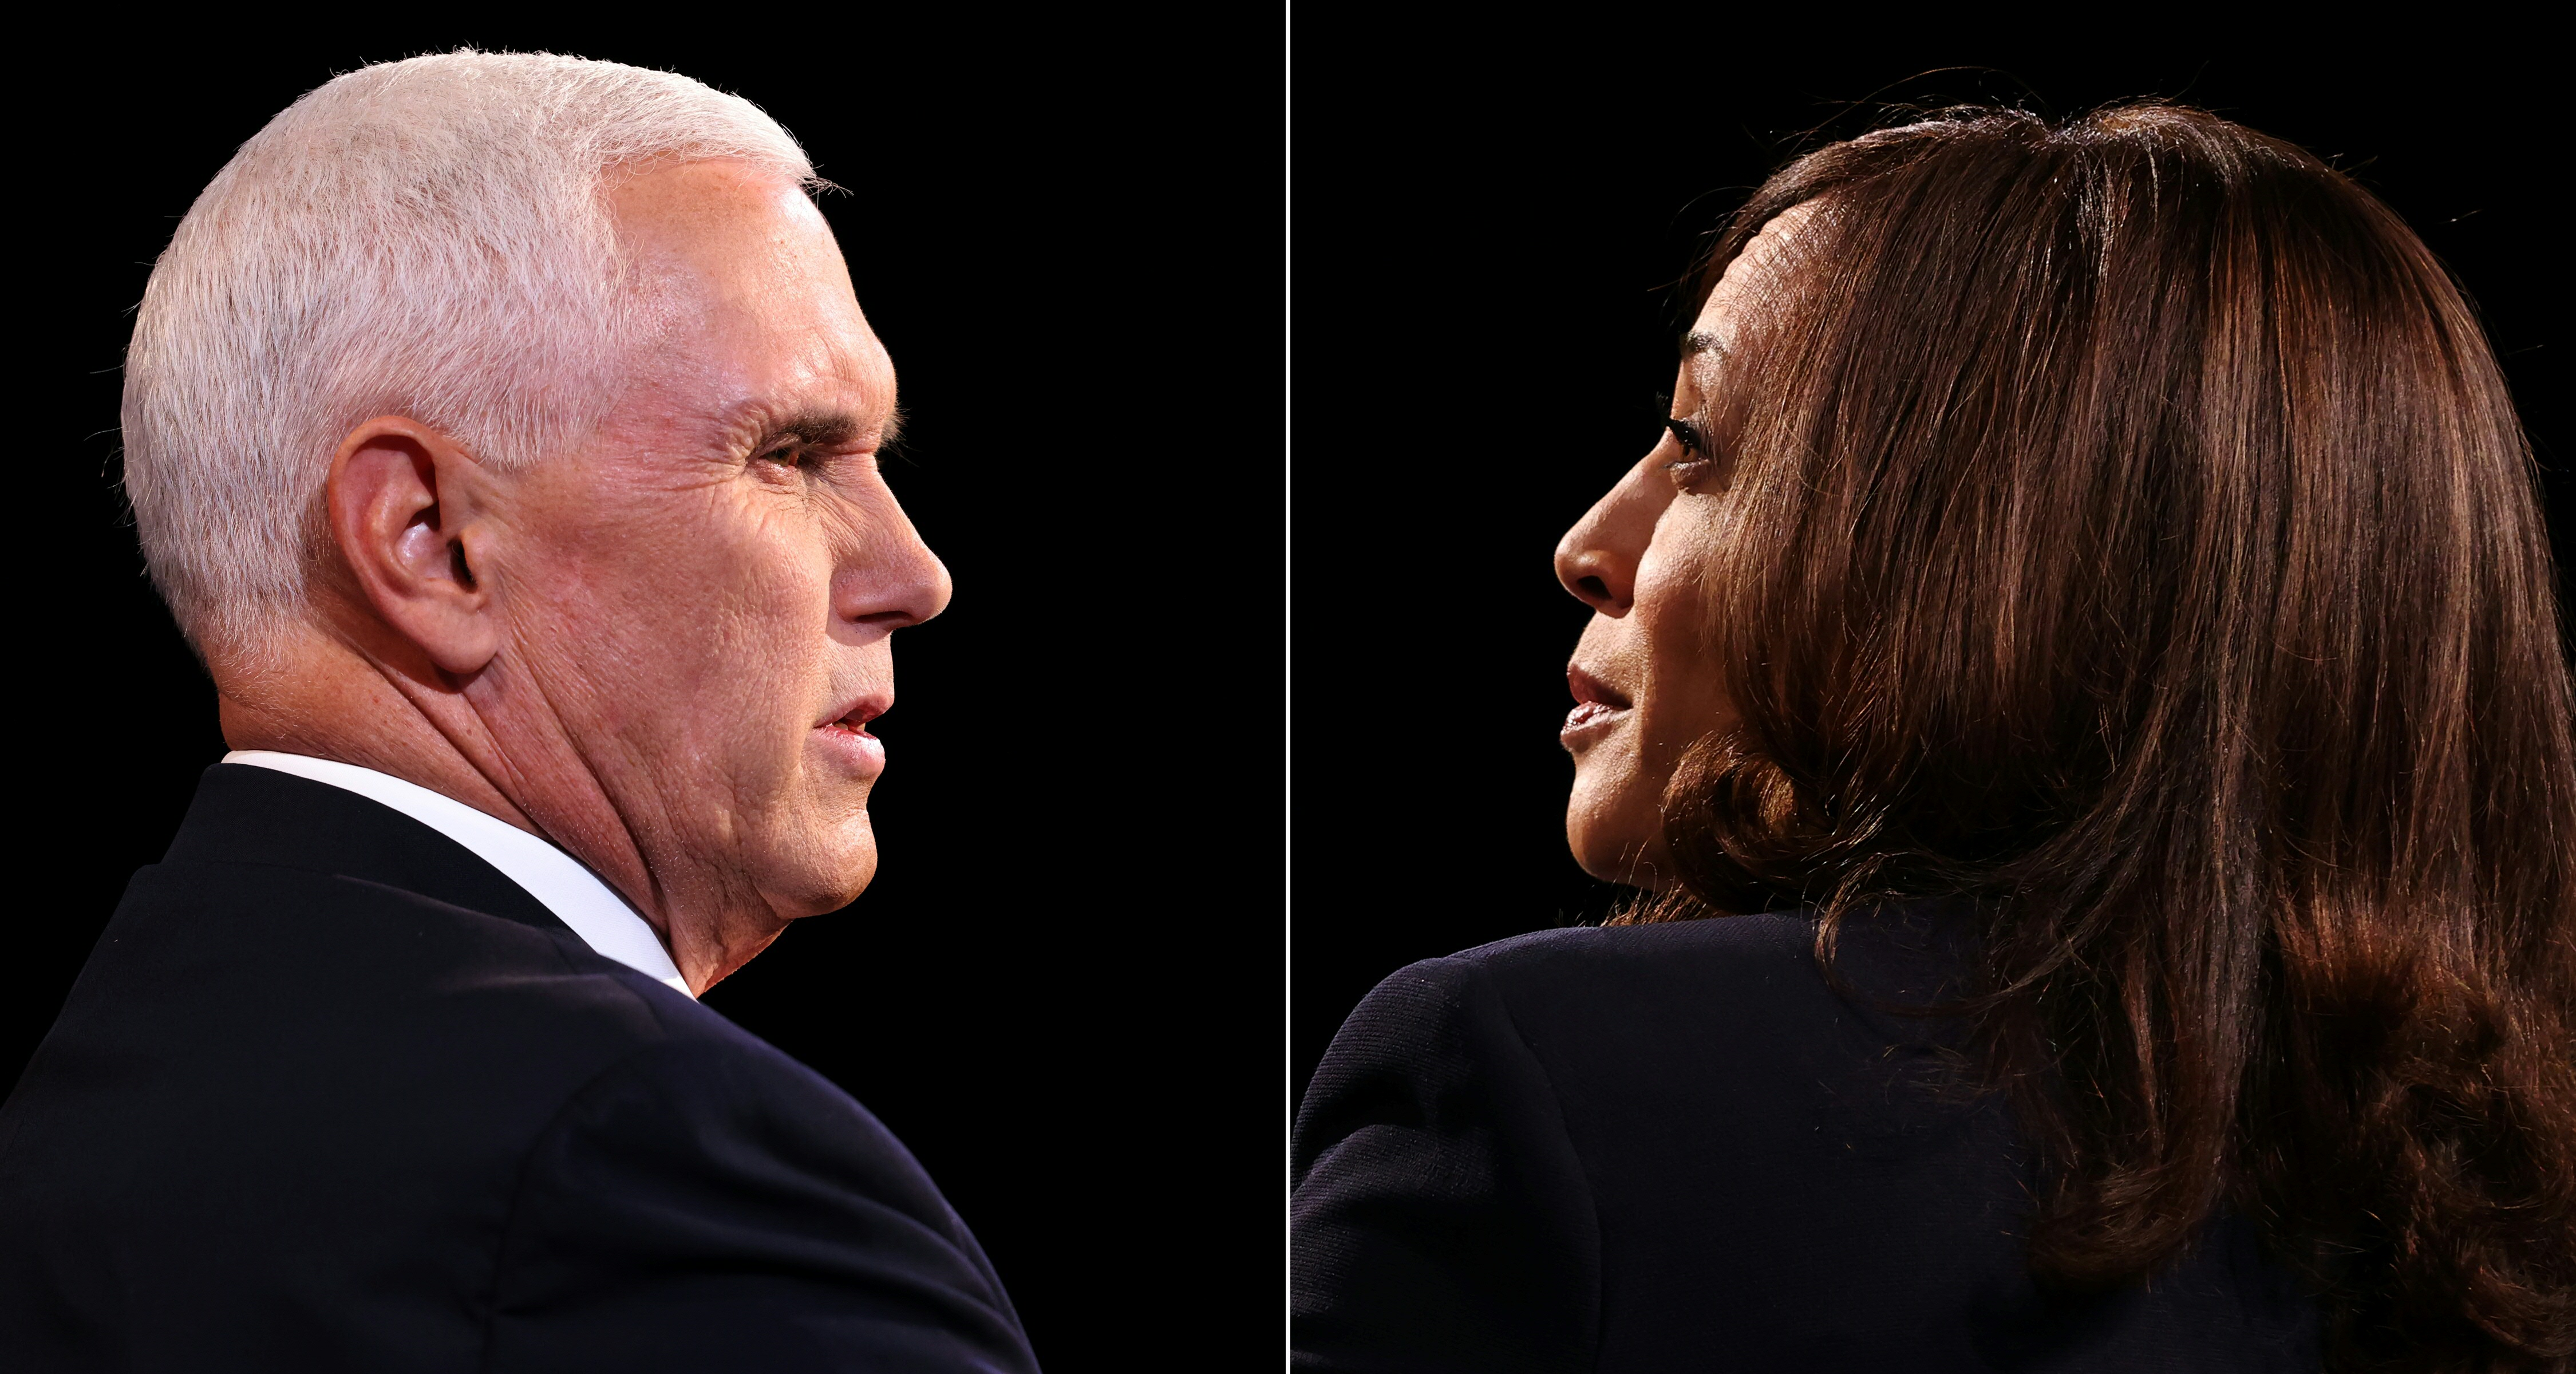 (COMBO) This combination of pictures created on October 07, 2020 shows US Vice President Mike Pence and Democratic vice presidential nominee and Senator from California Kamala Harris  during the vice presidential debate in Kingsbury Hall at the University of Utah on October 7, 2020, in Salt Lake City, Utah. (Photos by Justin Sullivan / POOL / AFP) (Photo by JUSTIN SULLIVAN/POOL/AFP via Getty Images)